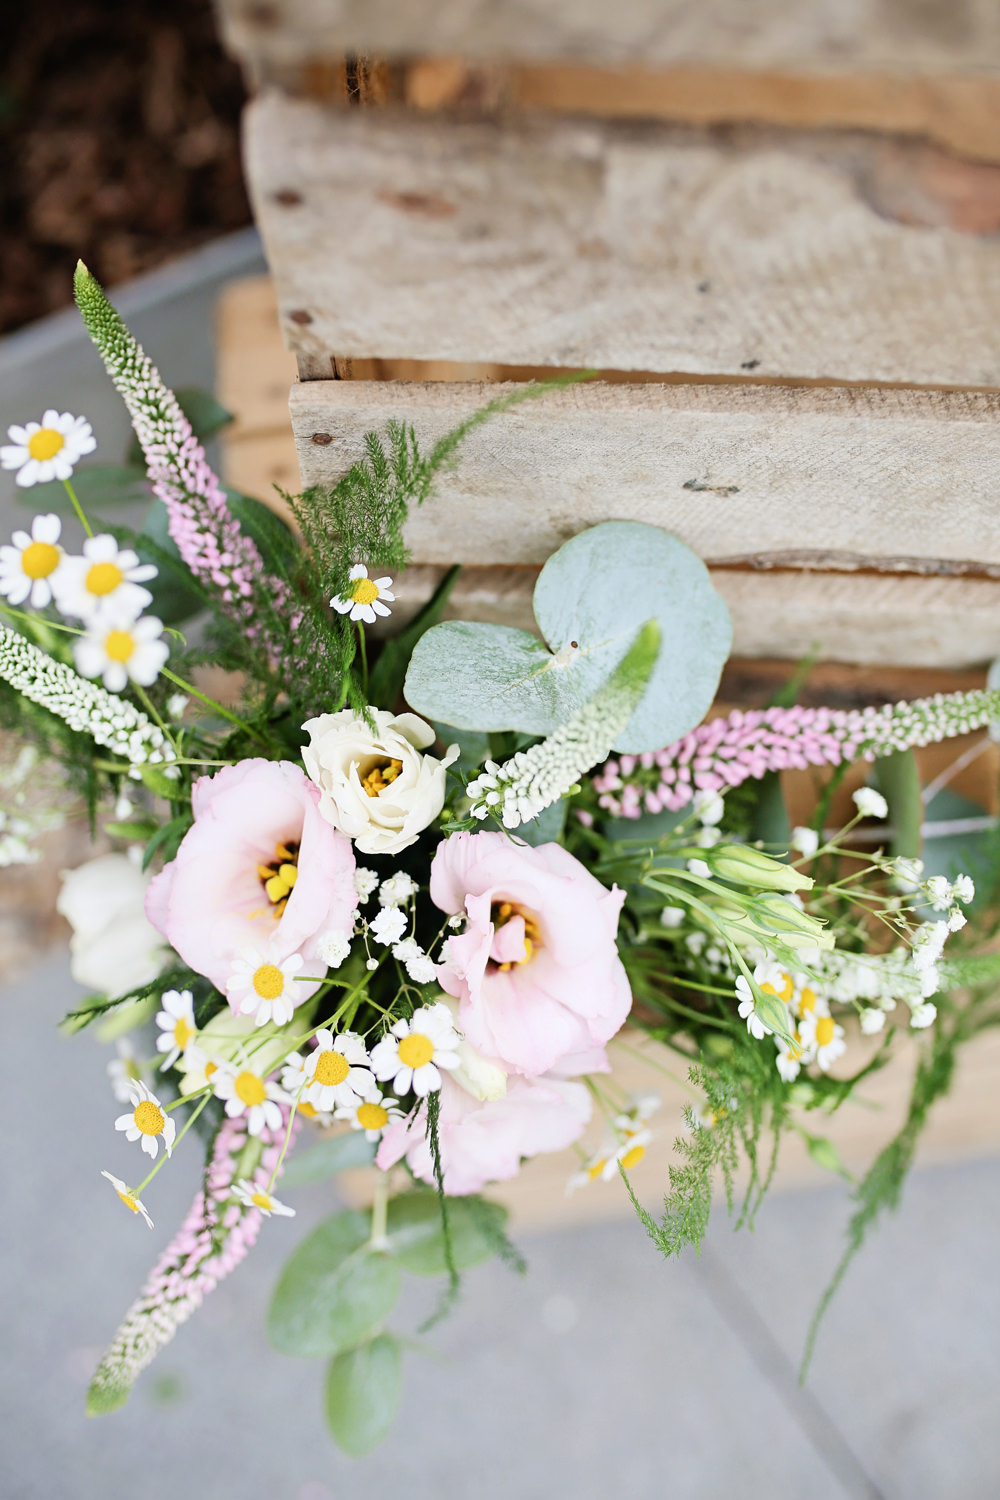 Box Crate Wooden Decor Flowers Pink Lisianthus Daisy Milling Barn Wedding Victoria Mitchell Photography